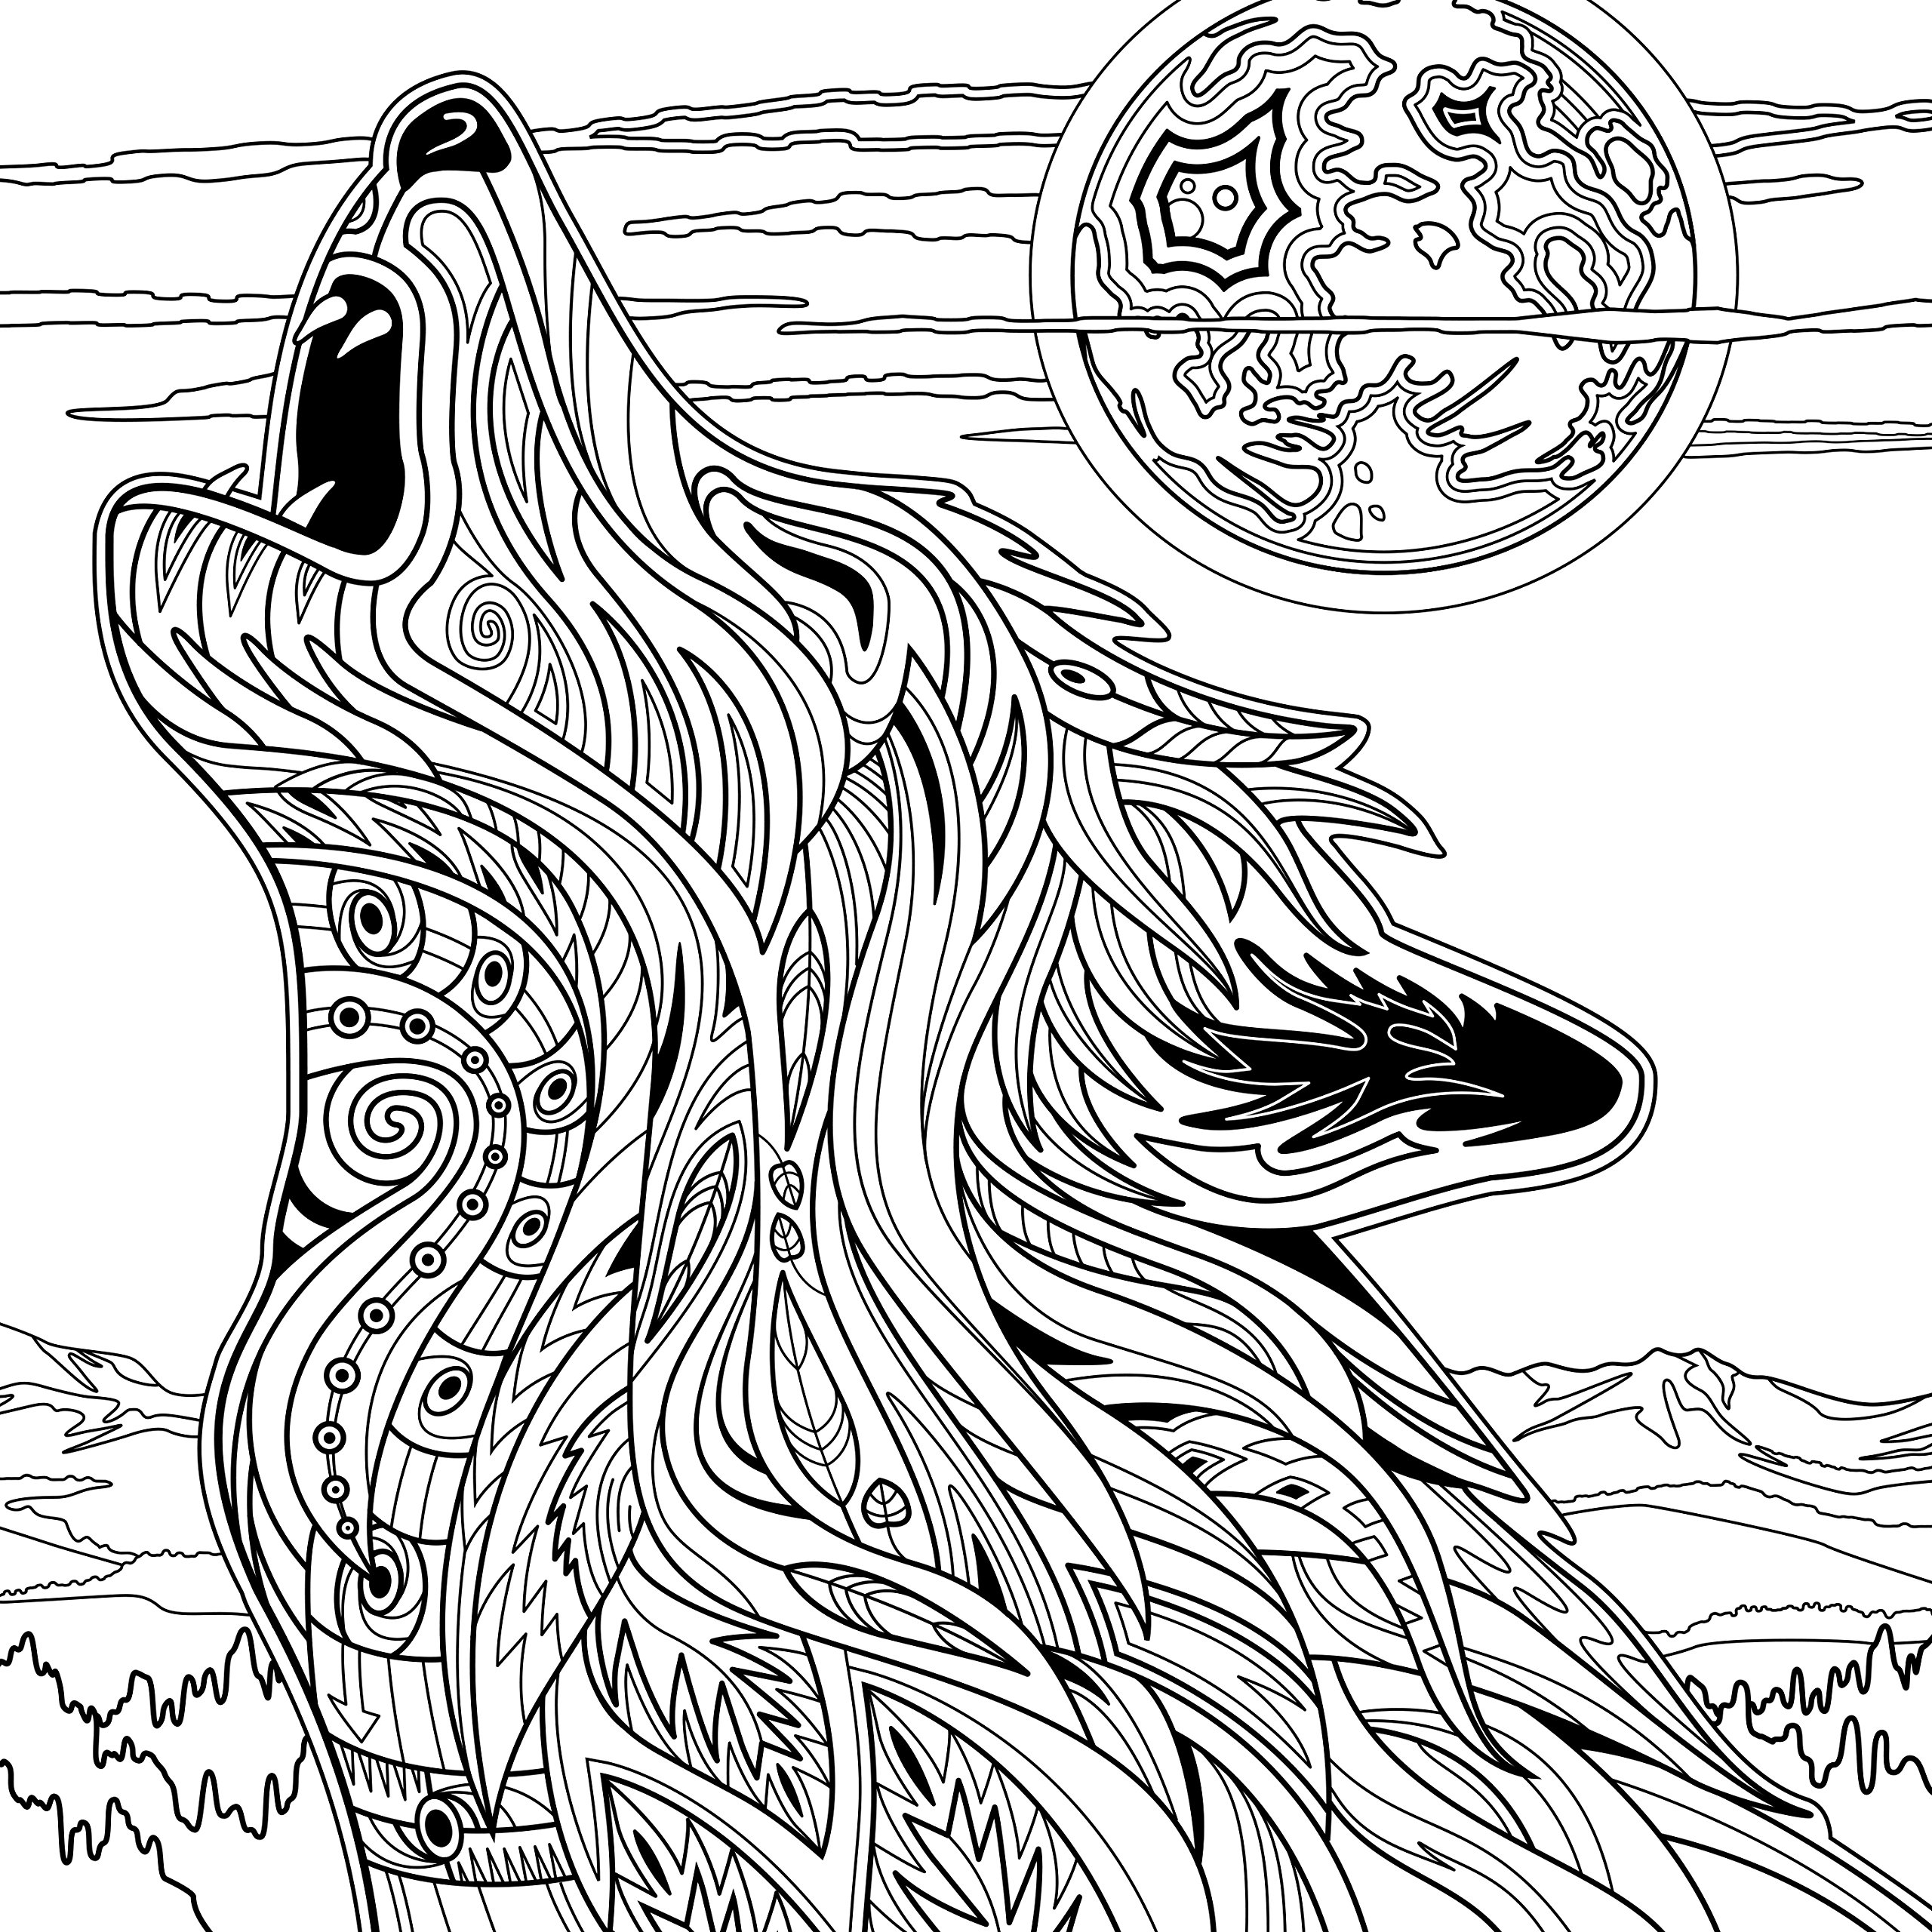 2560x2560 Yellowstone National Park, Adult Coloring Book Dave Ember, Don